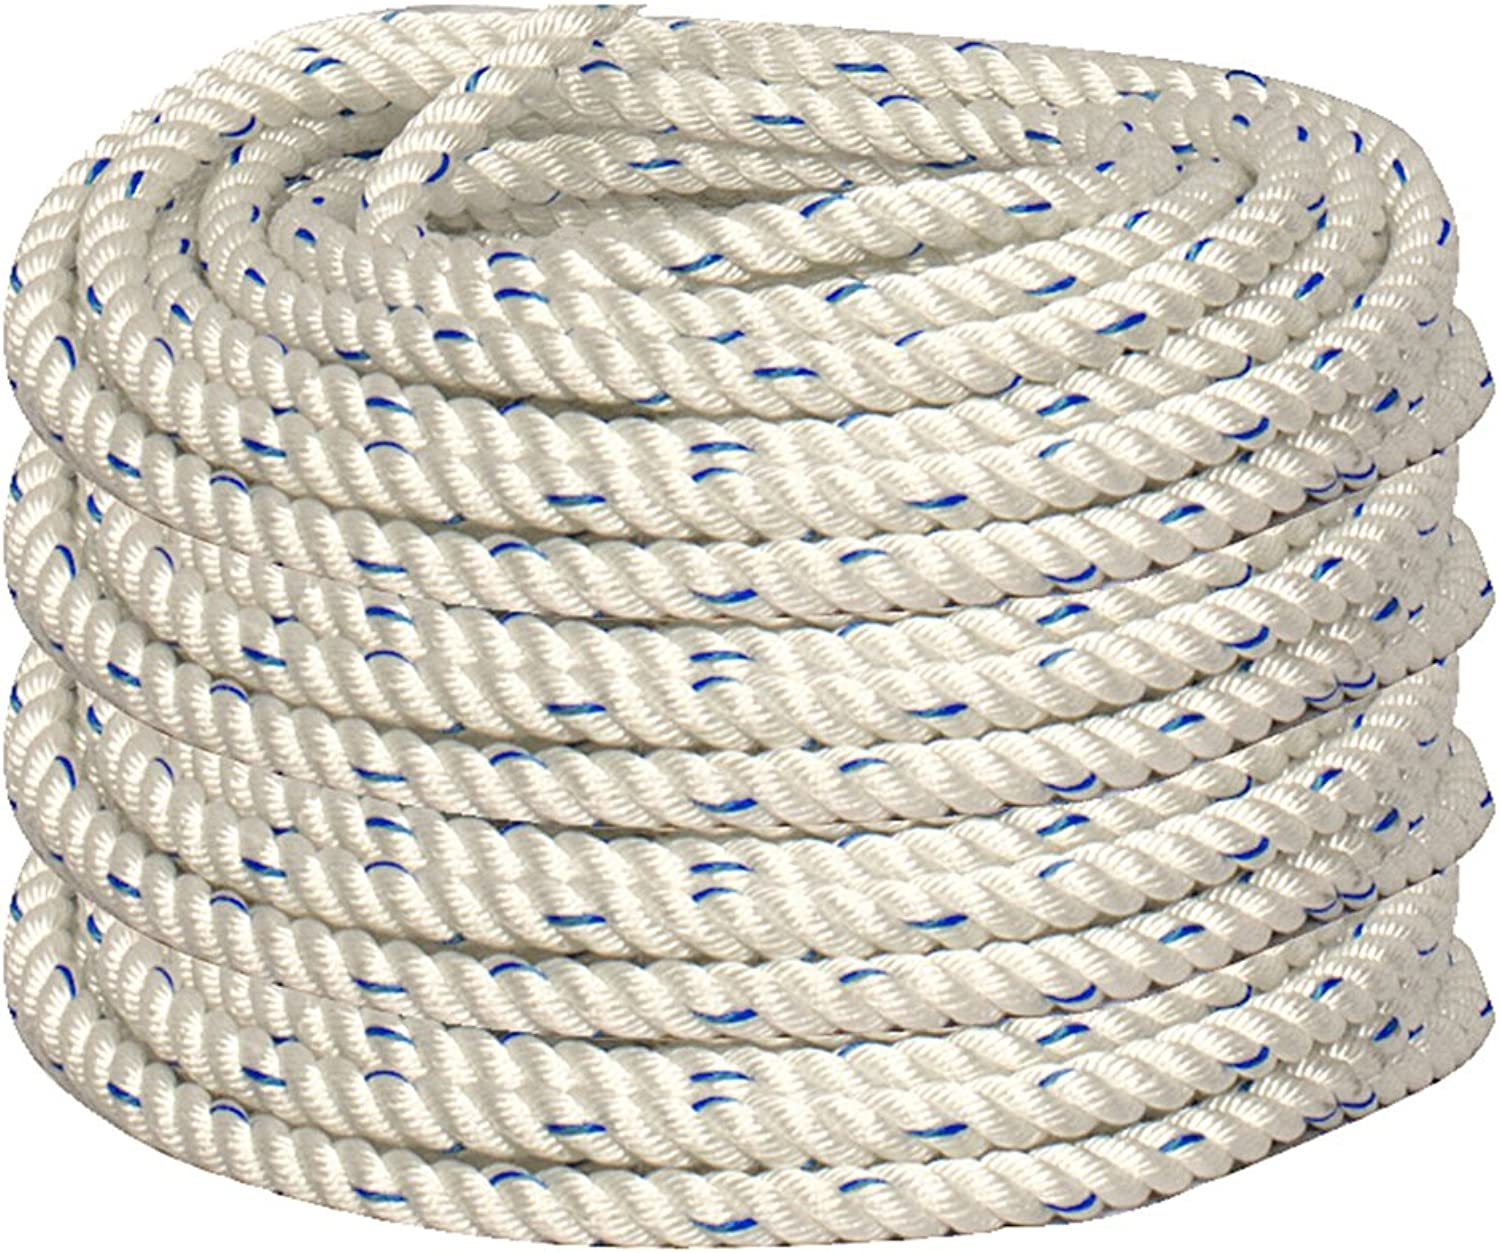 Madaco Roof Construction Fall Predection Heavy Duty Industrial Safety 100FT 3Strand Polypropylene Rope ANSI OSHA L100